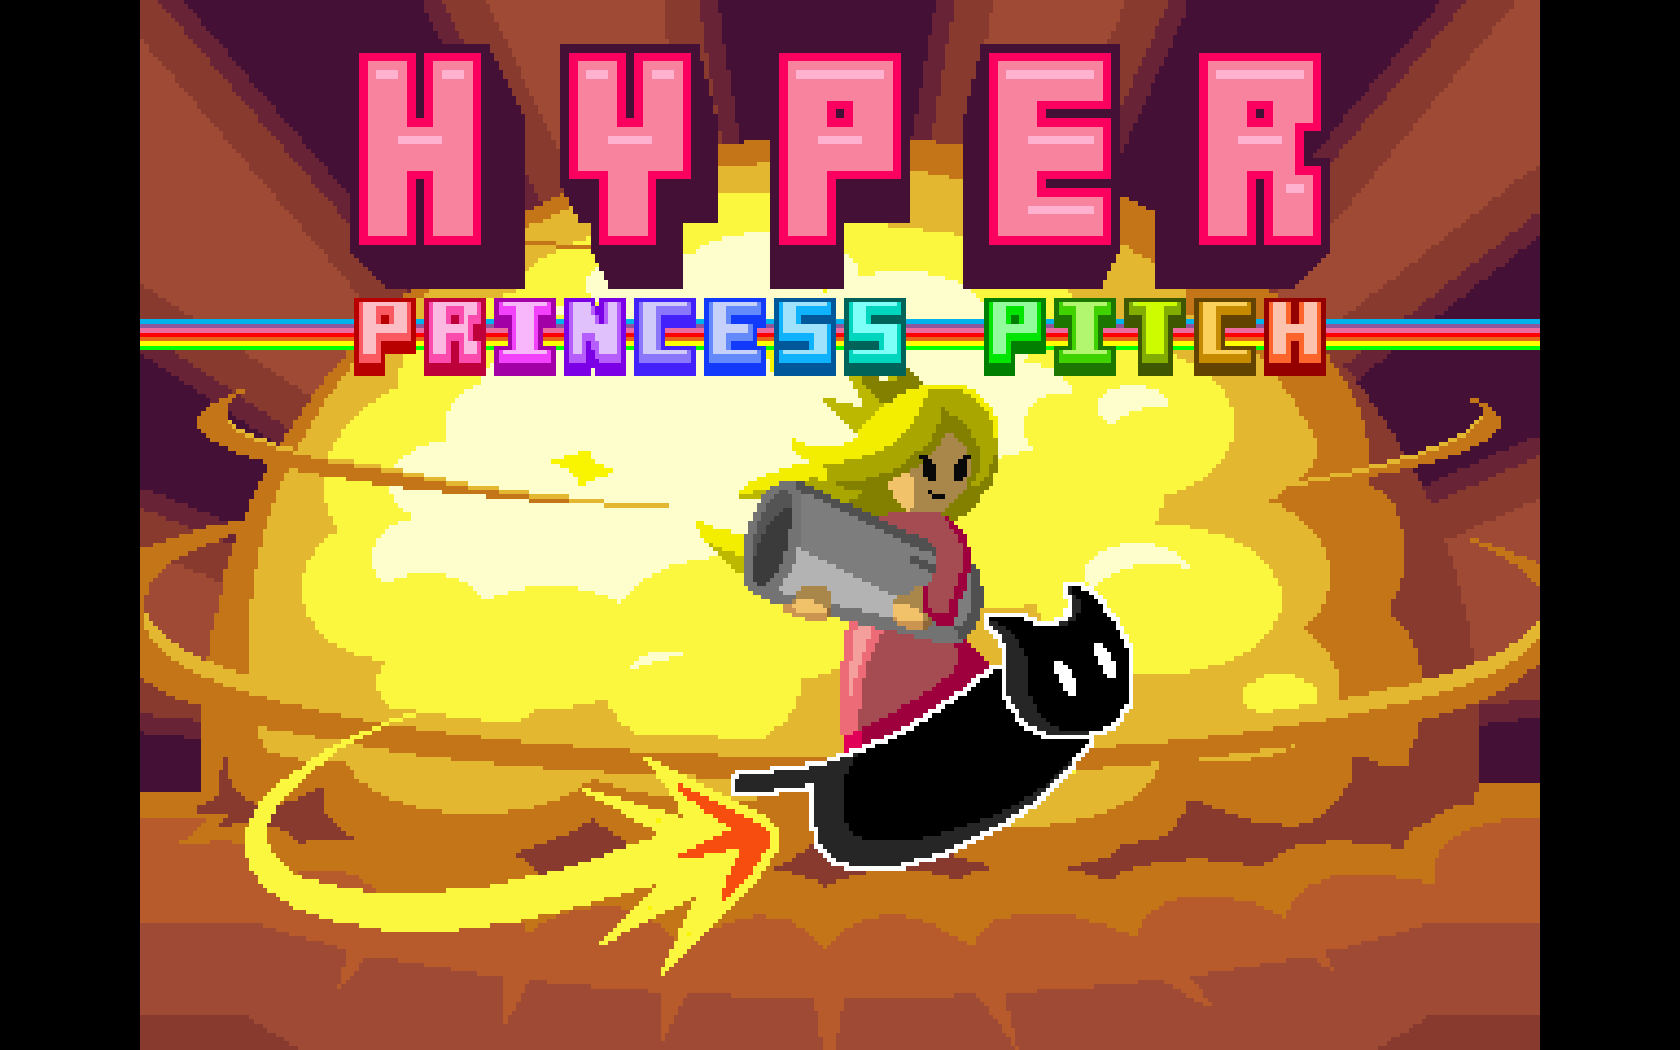 HyperPrincessPitch